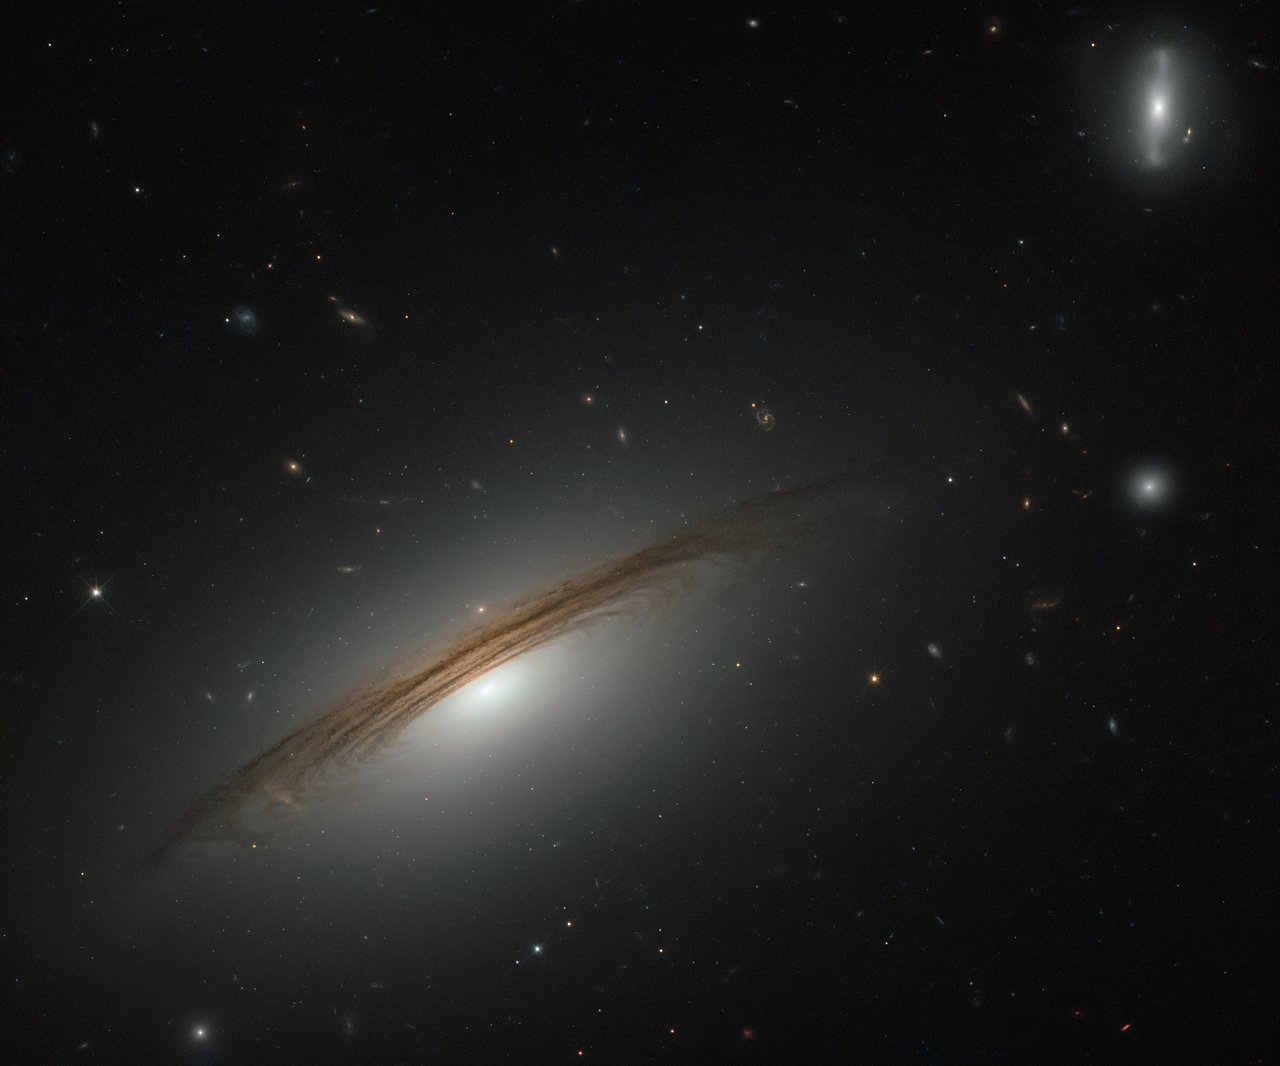 This NASA/ESA Hubble Space Telescope image showcases the remarkable galaxy UGC 12591. It is located just under 400million light-years away from Earth .